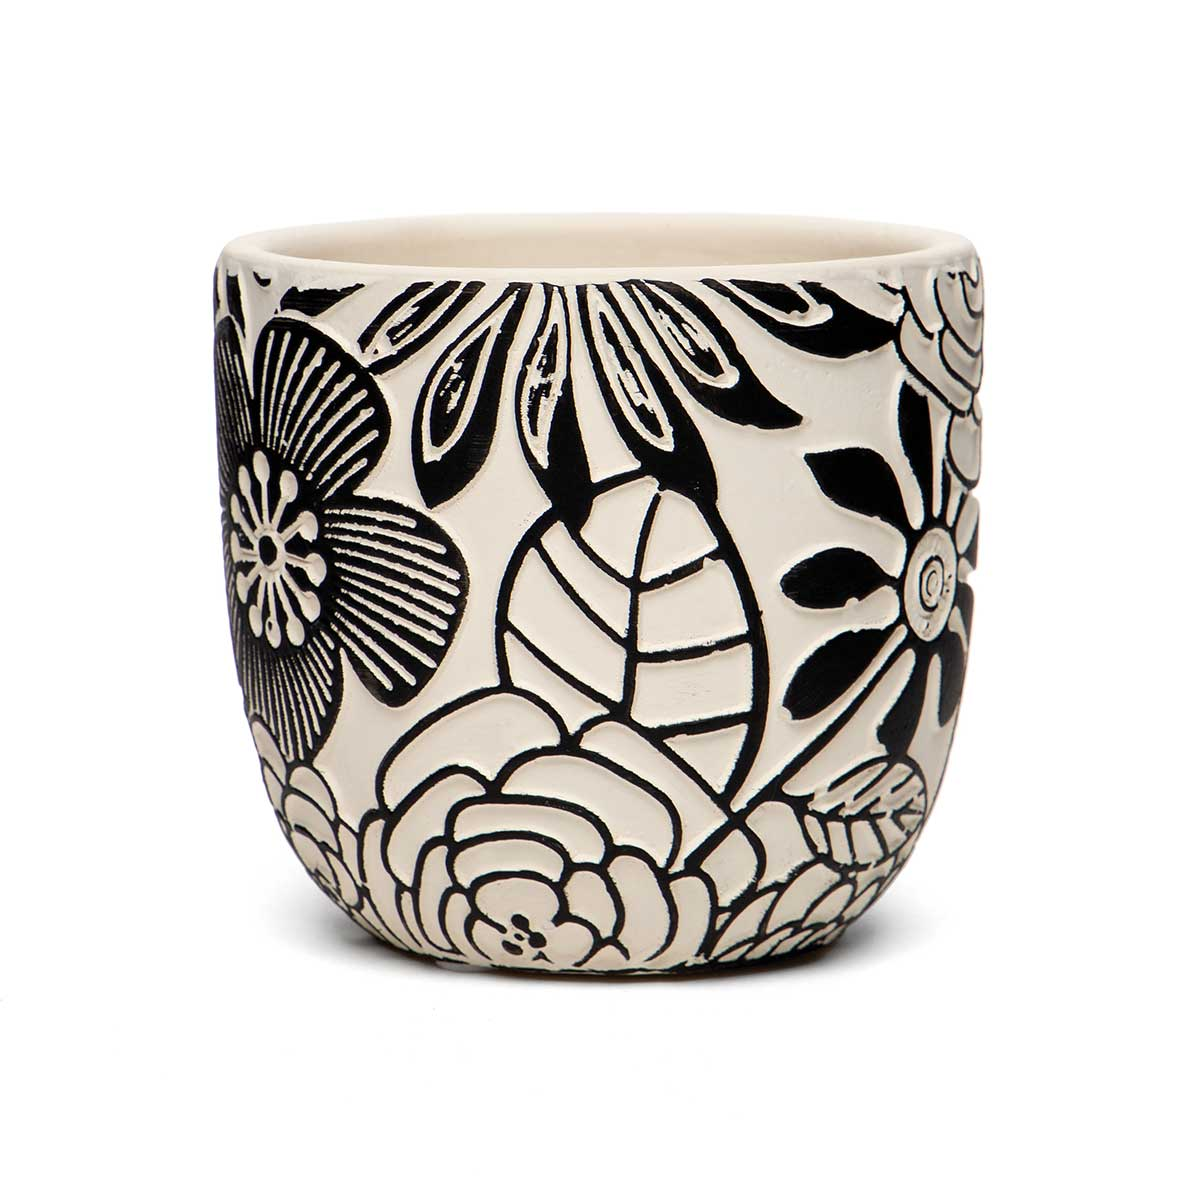 "FLORAL MOTIF TERRA COTTA POT BLACK/WHITE SMALL 4.25""x3.75"""